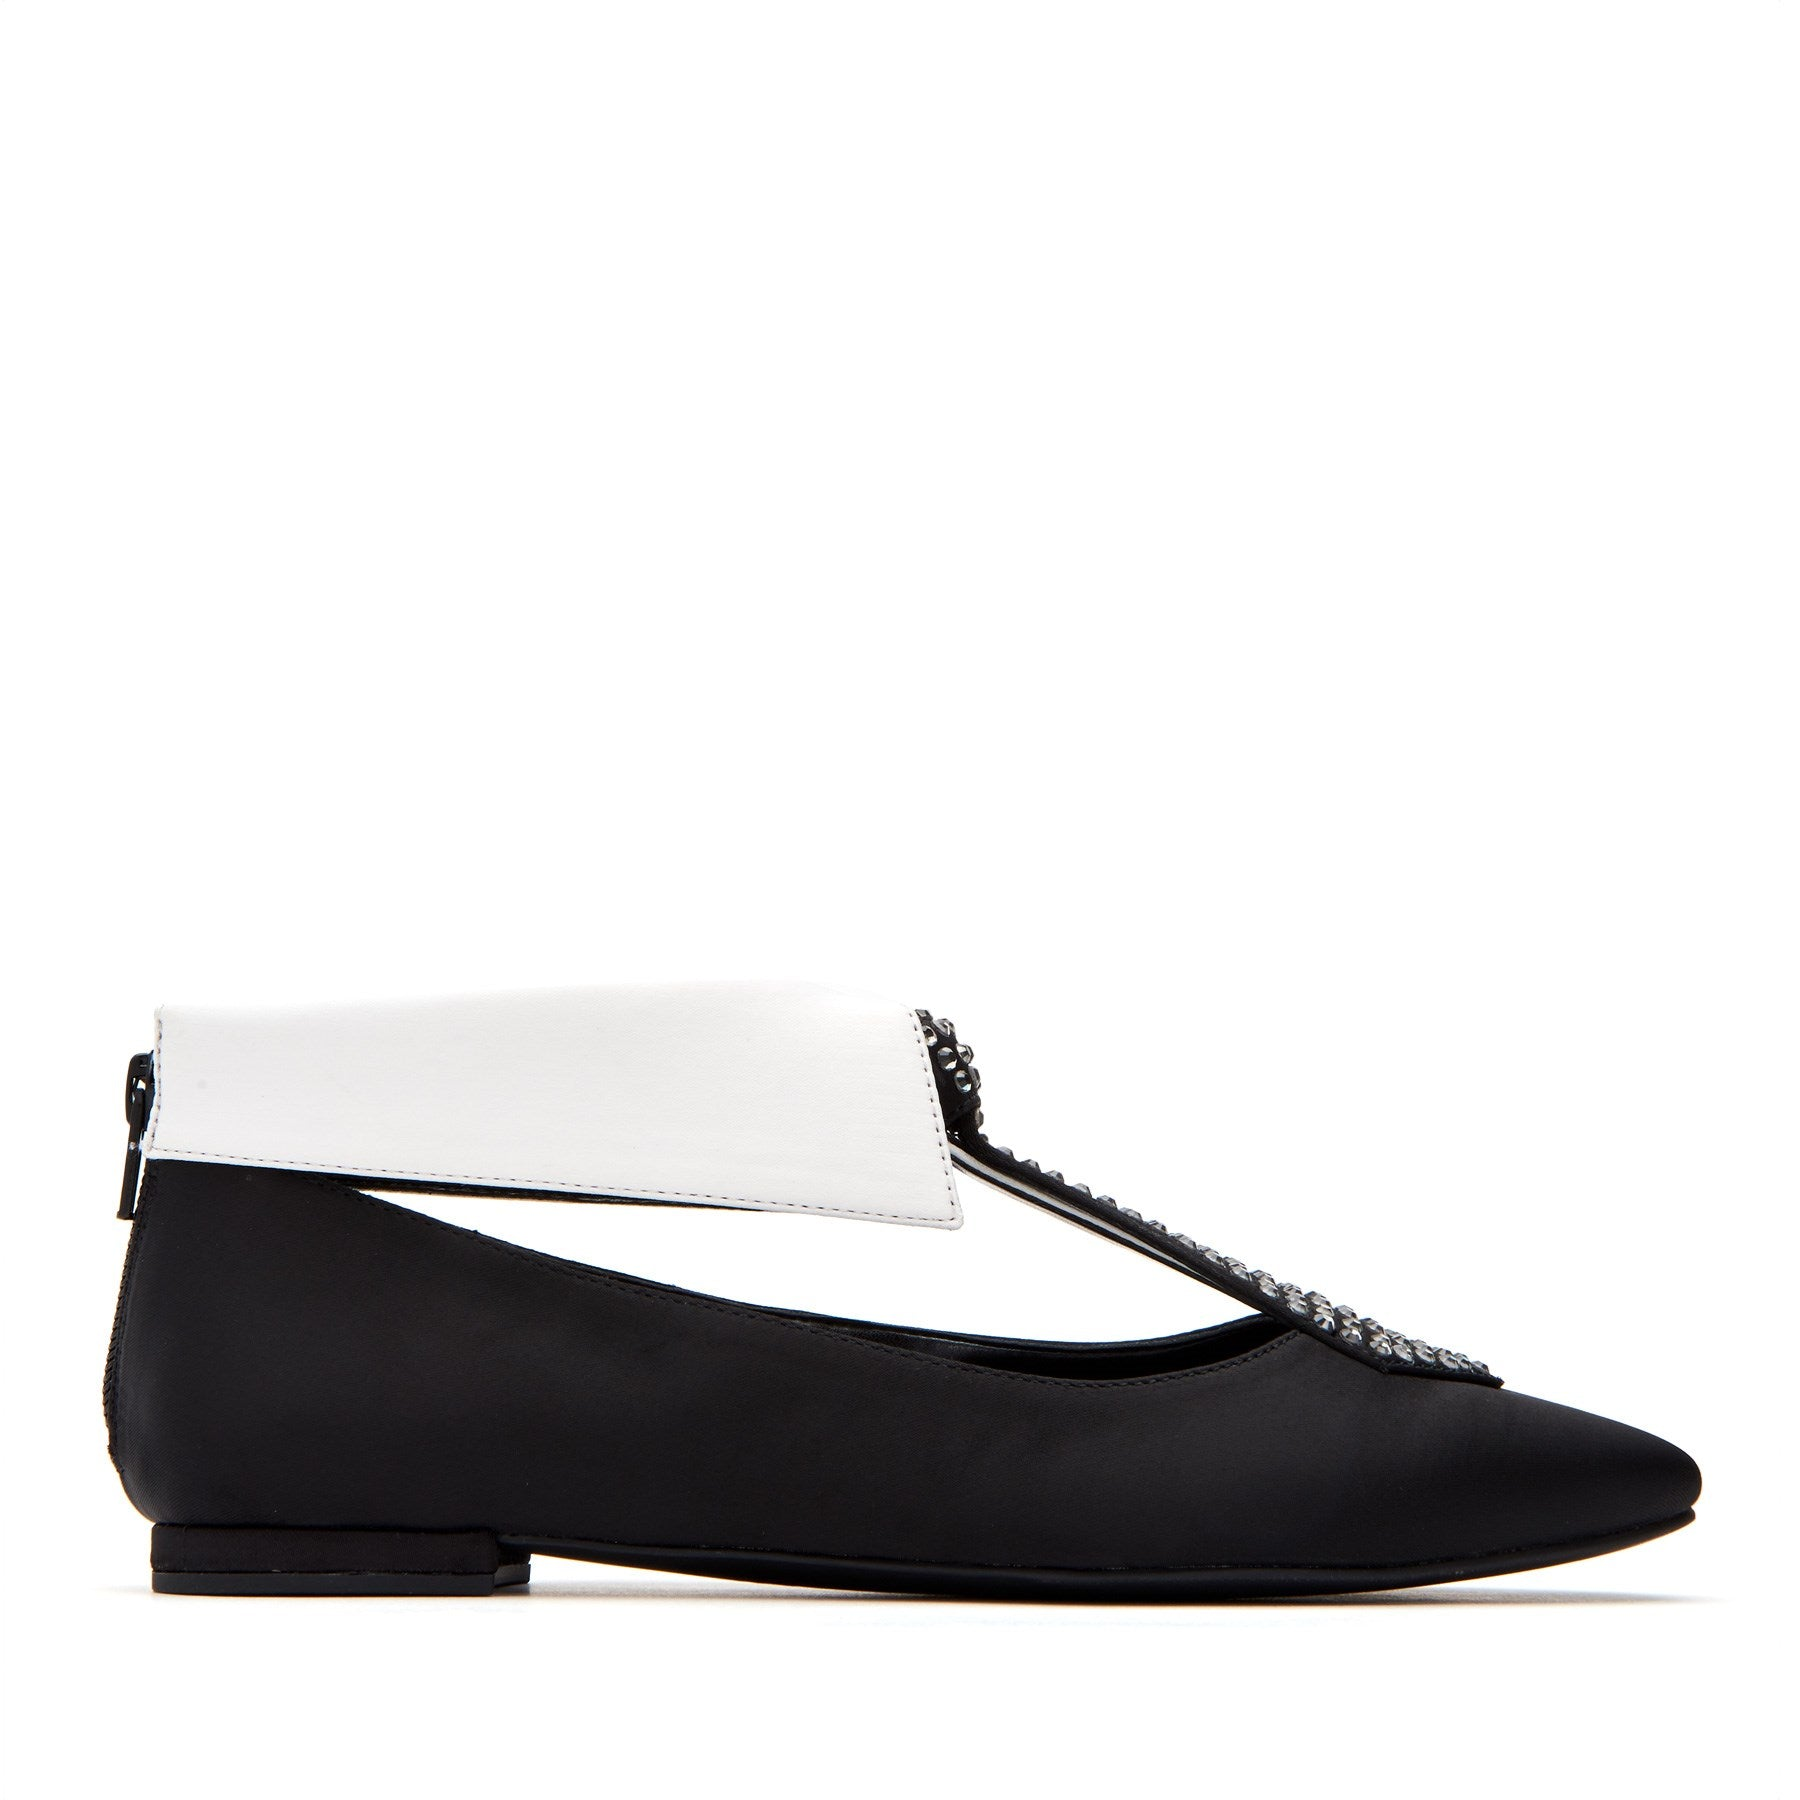 katy perry flat in white/black size 5   the uni